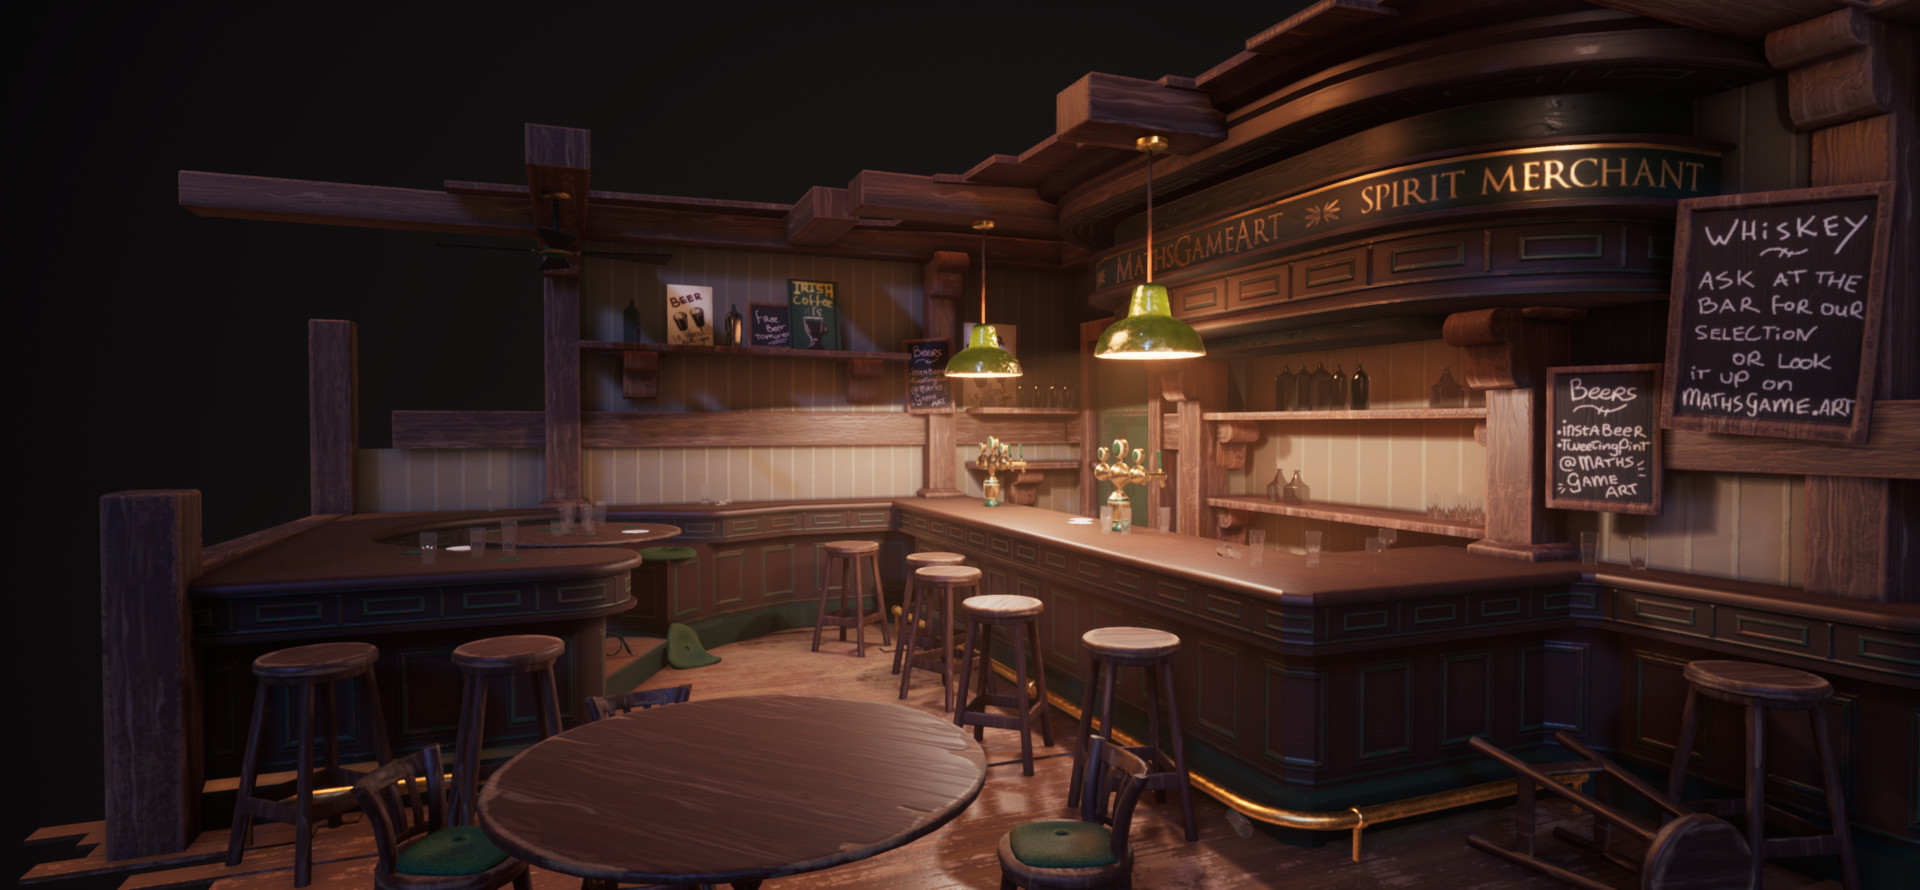 Imported everyhing into UE4 to really  get the most out of the lighting. I looked at reference images of cafés and pubs at night and exaggerated some features to boost the atmosphere.